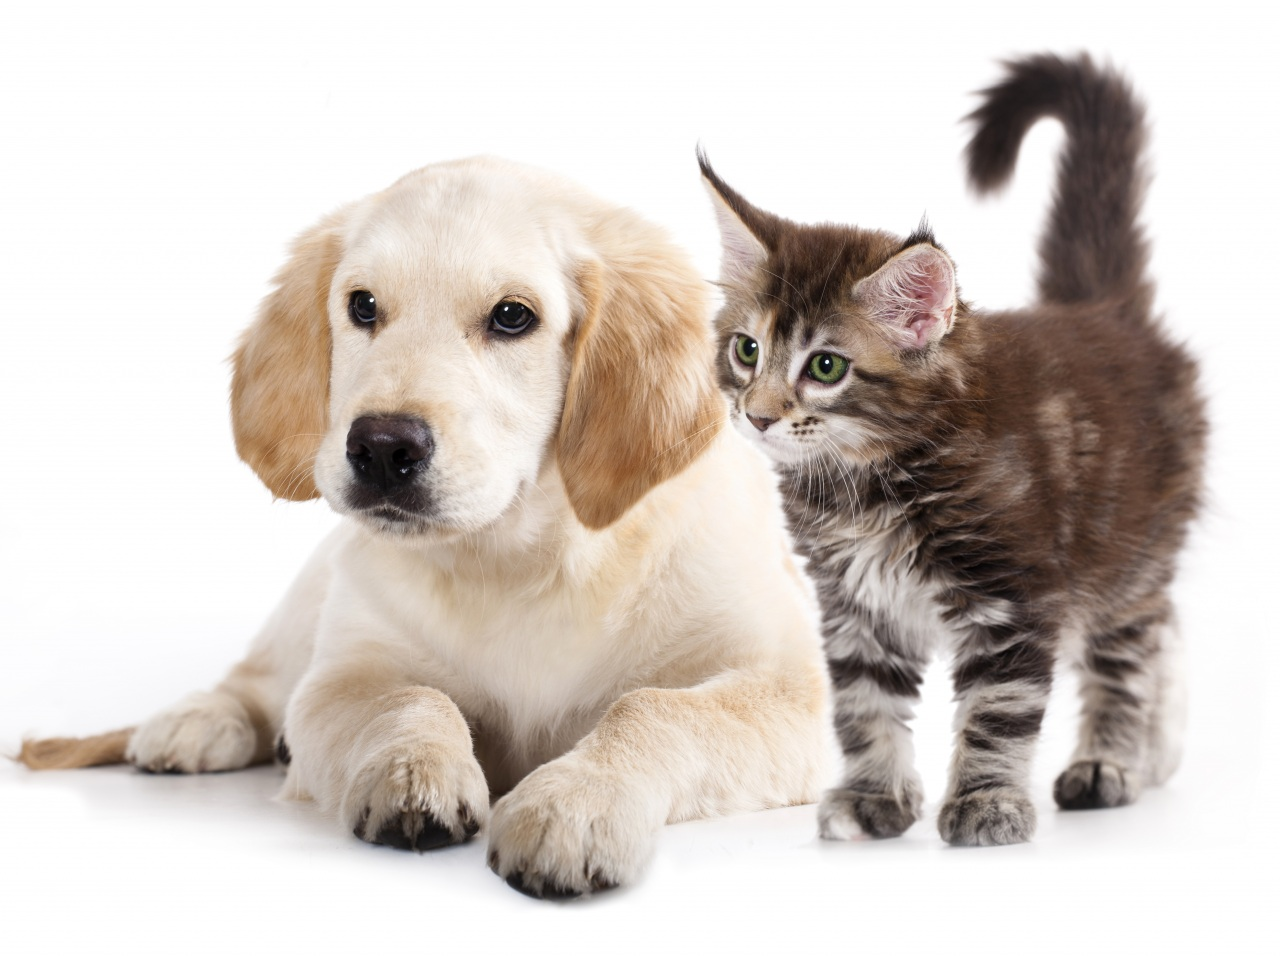 Dogs_Cats_Kittens_Puppy_436744.jpg